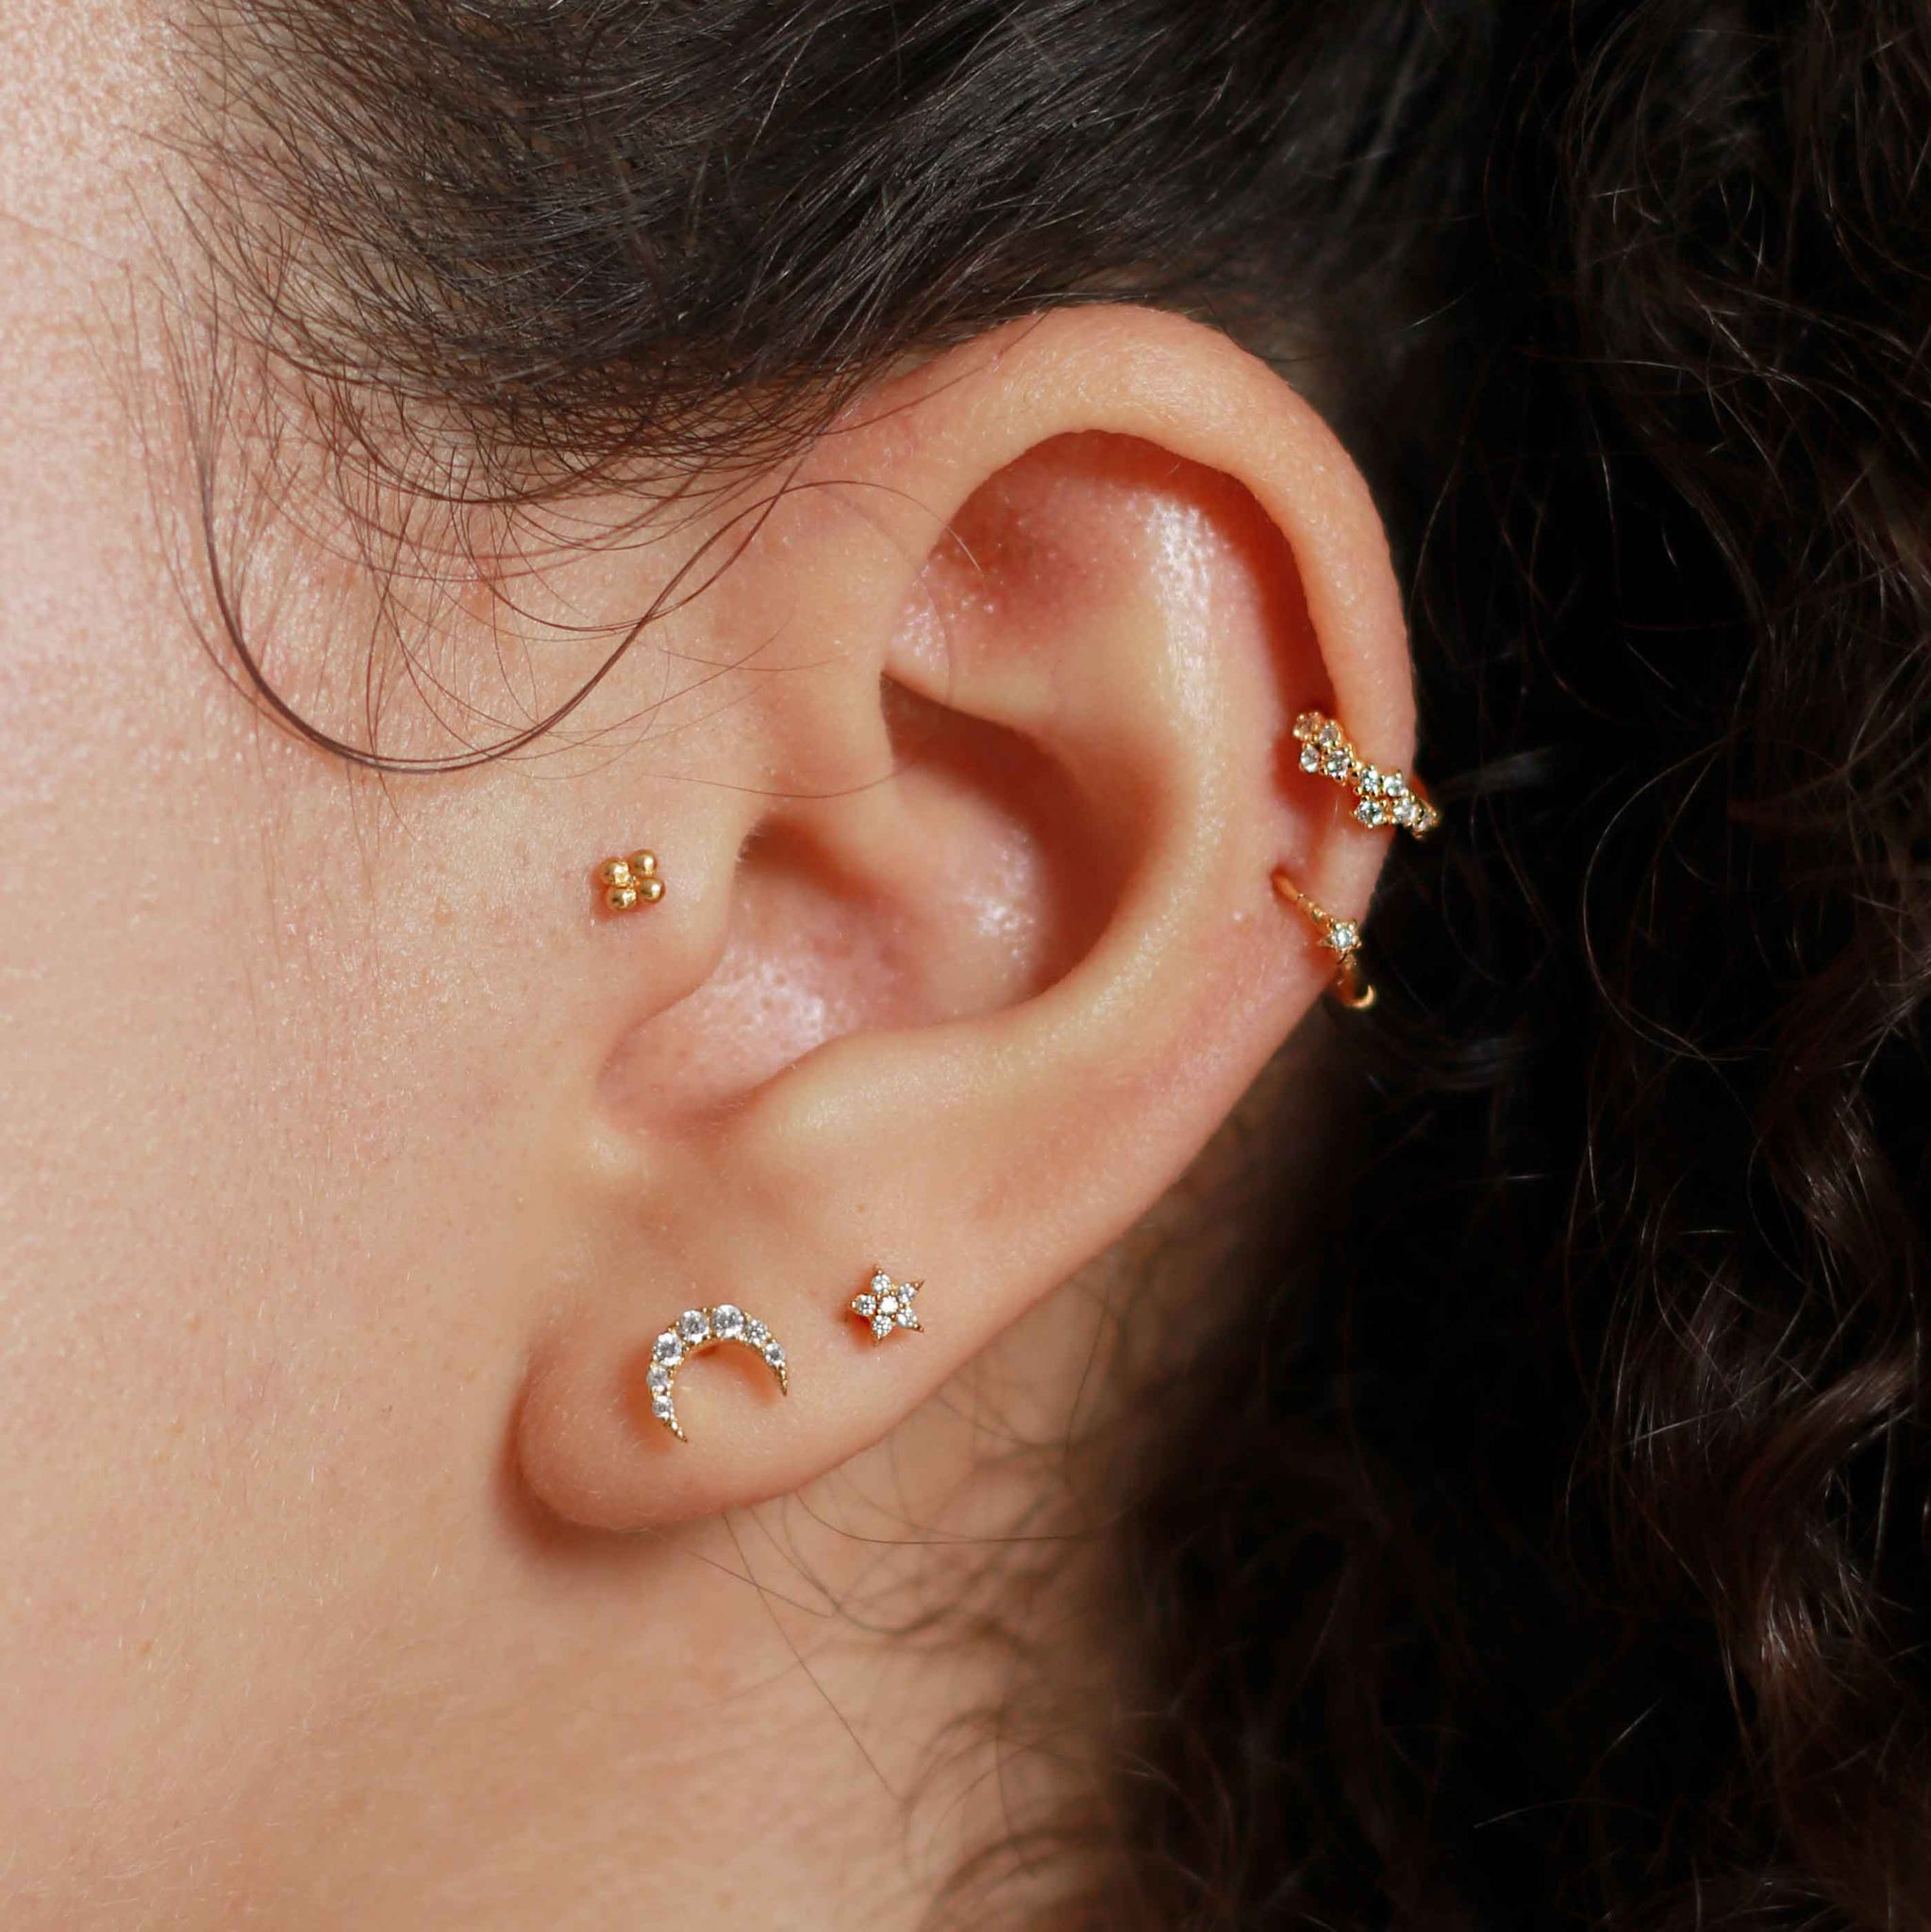 Jewelled Star Barbell in Gold on Ear Stack